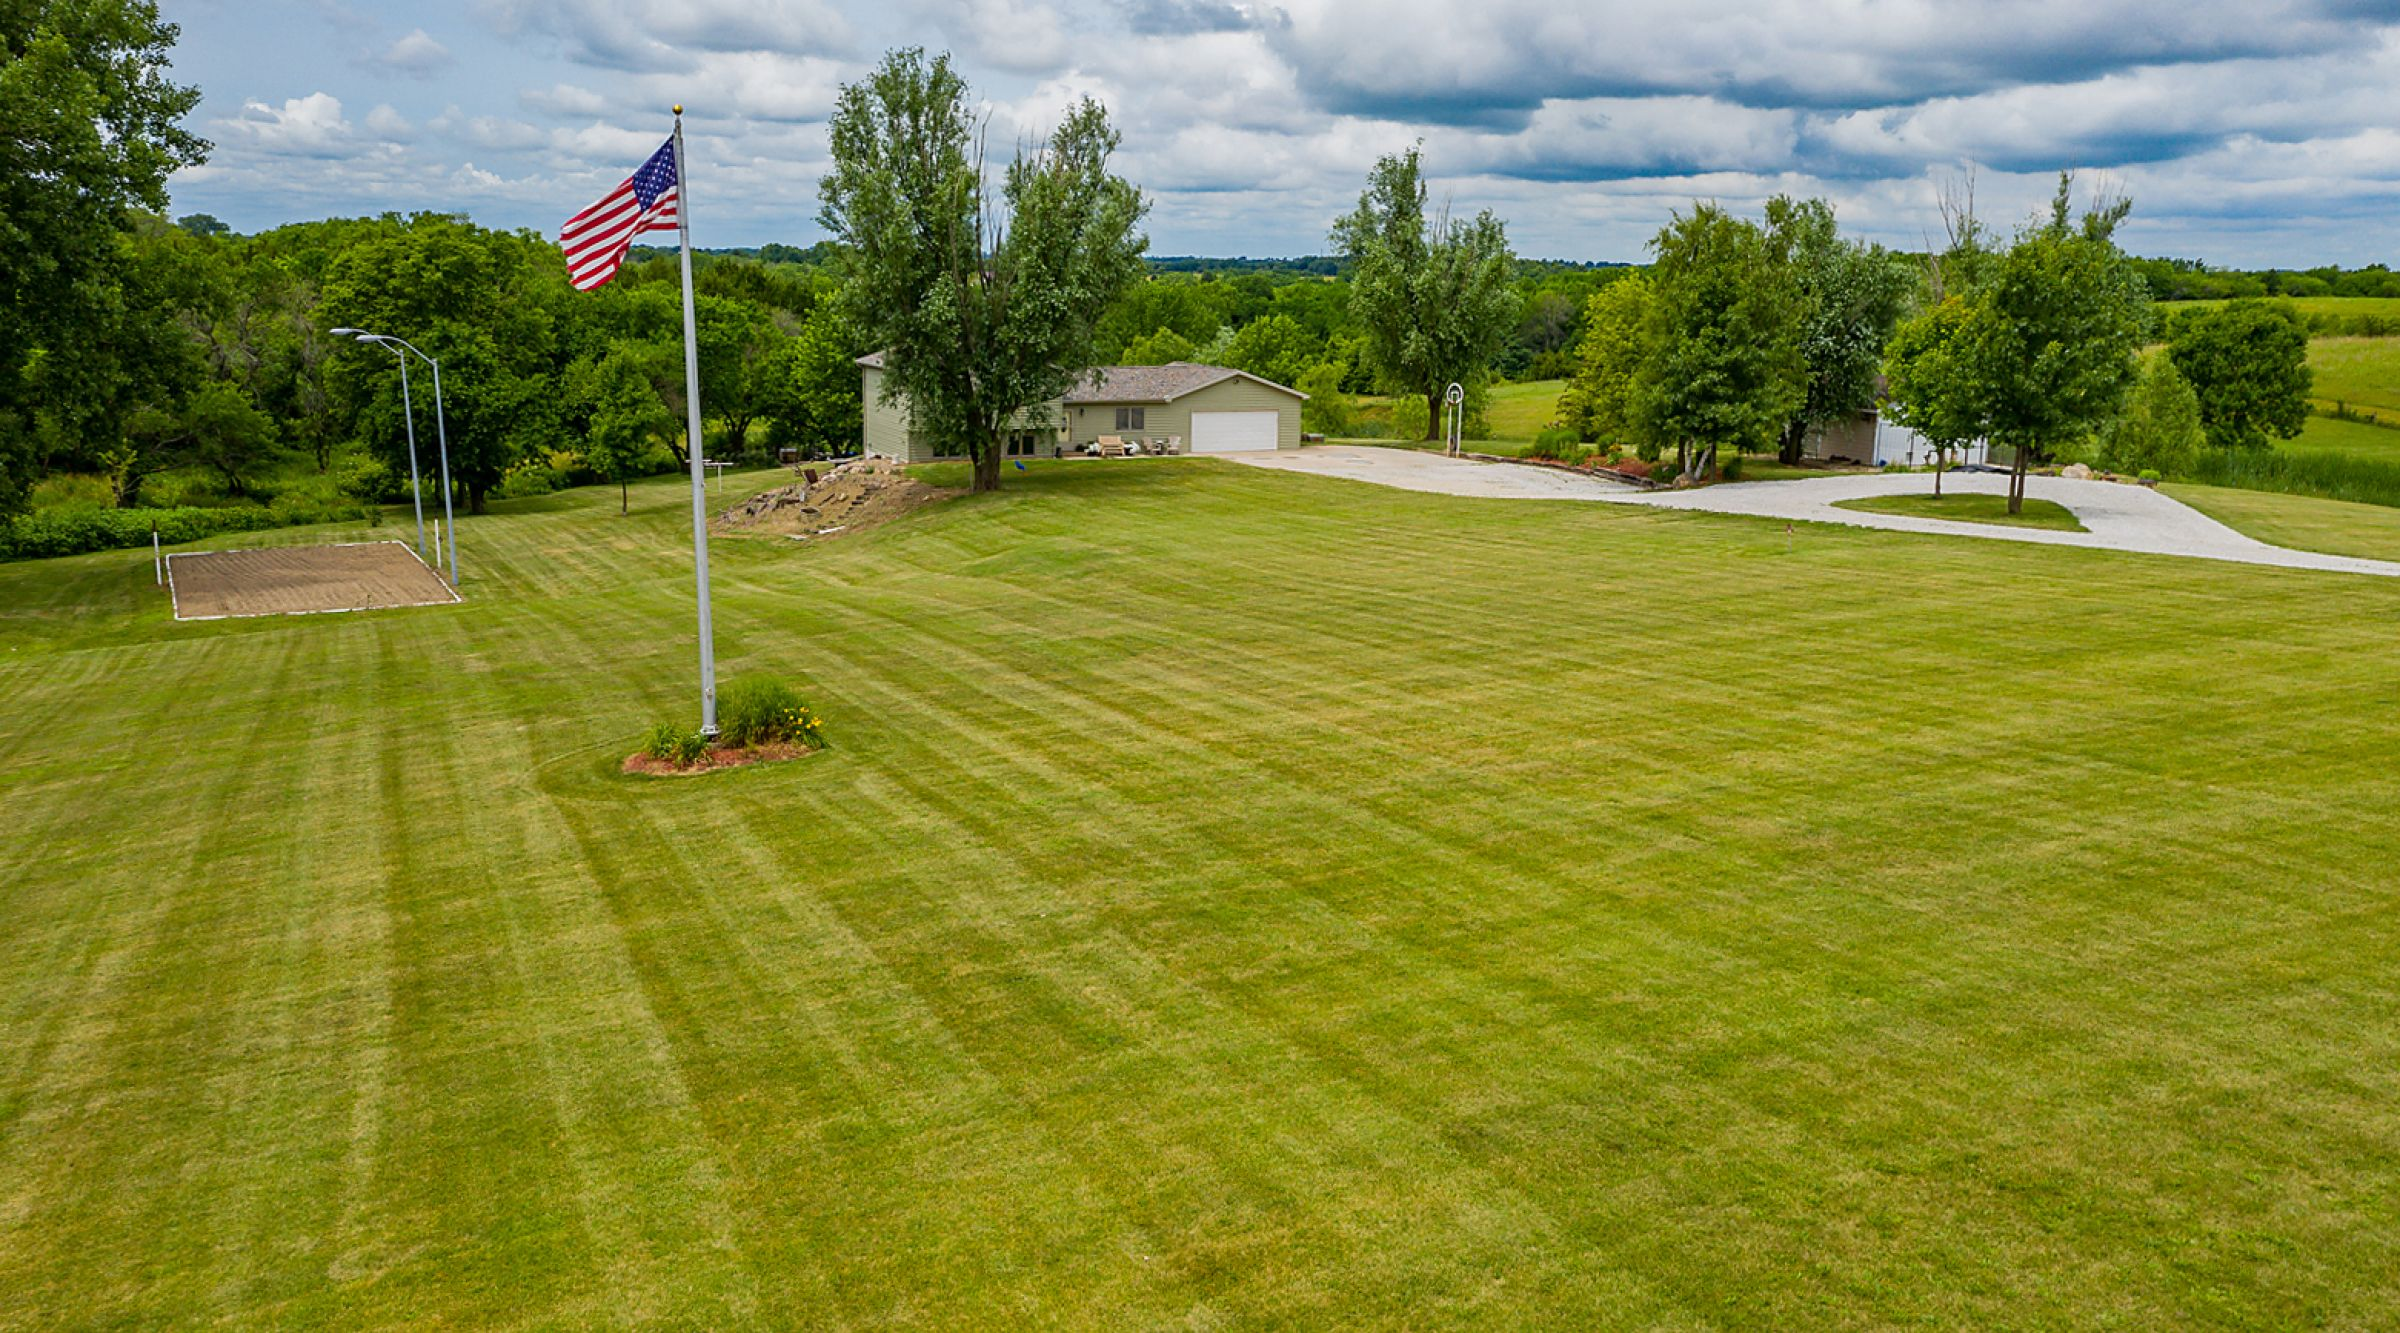 residential-warren-county-iowa-13-acres-listing-number-15056-14-2020-07-02-015923.jpg